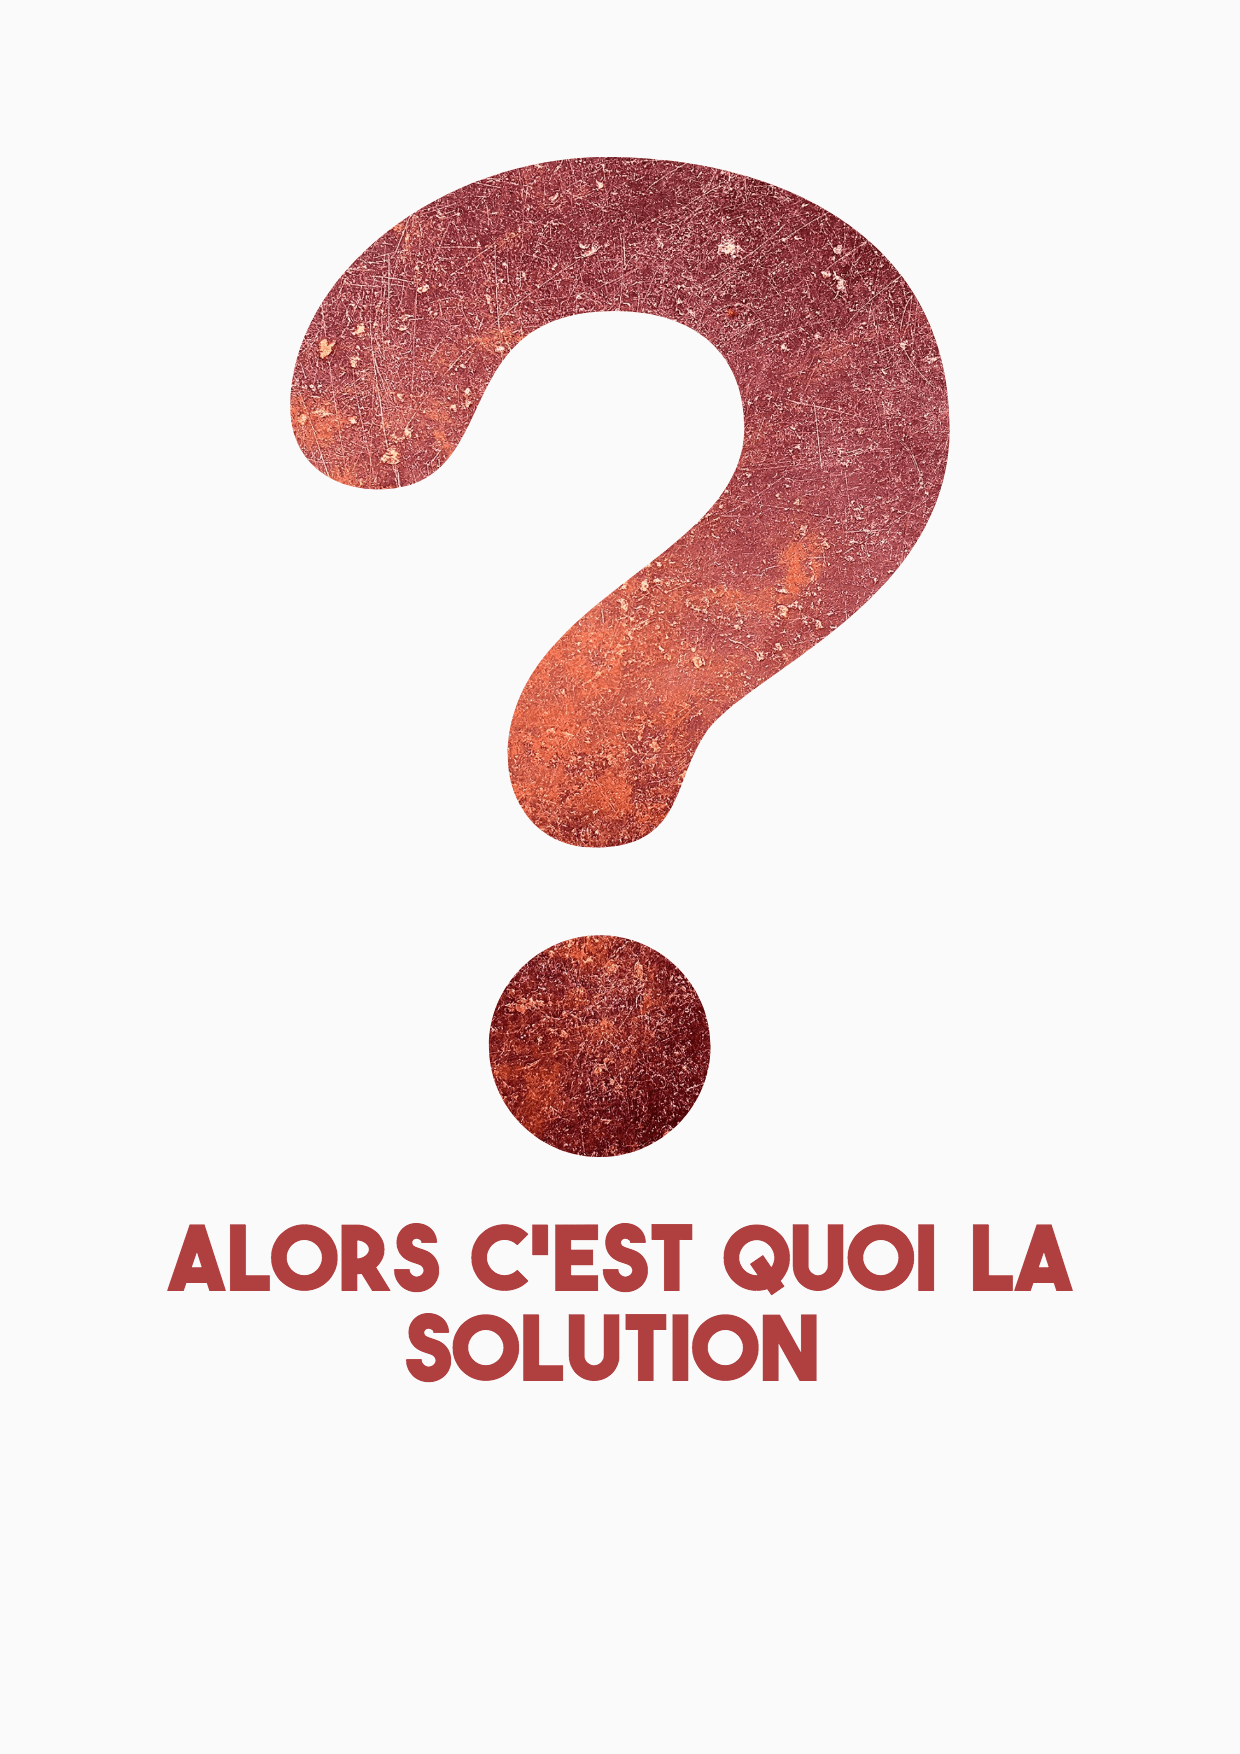 Luxury,                Poster,                Text,                Quote,                Simple,                White,                Red,                 Free Image